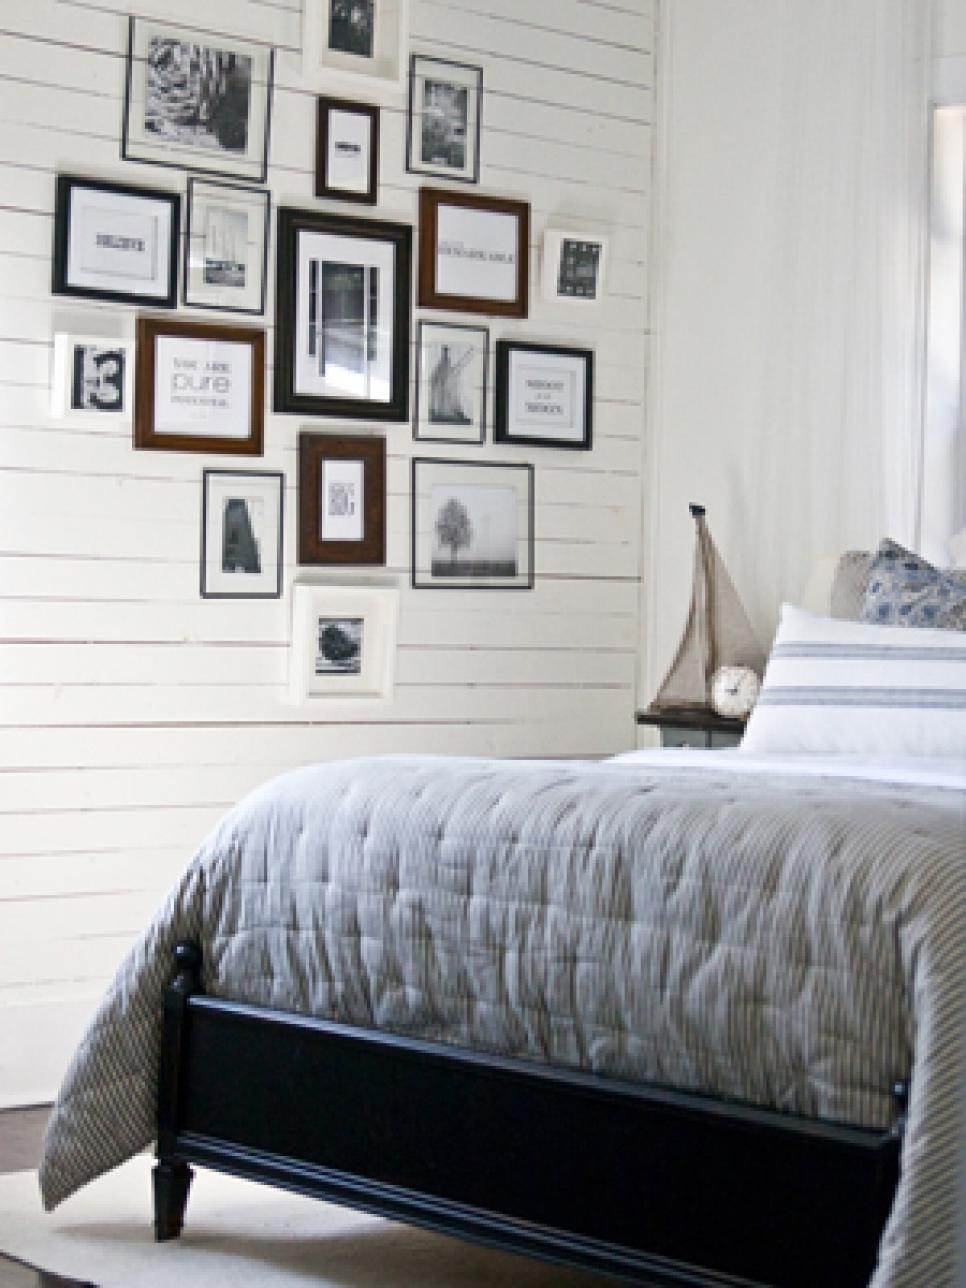 10 Ways To Display Bedroom Frames | Hgtv Pertaining To Bed Wall Art (Image 2 of 20)